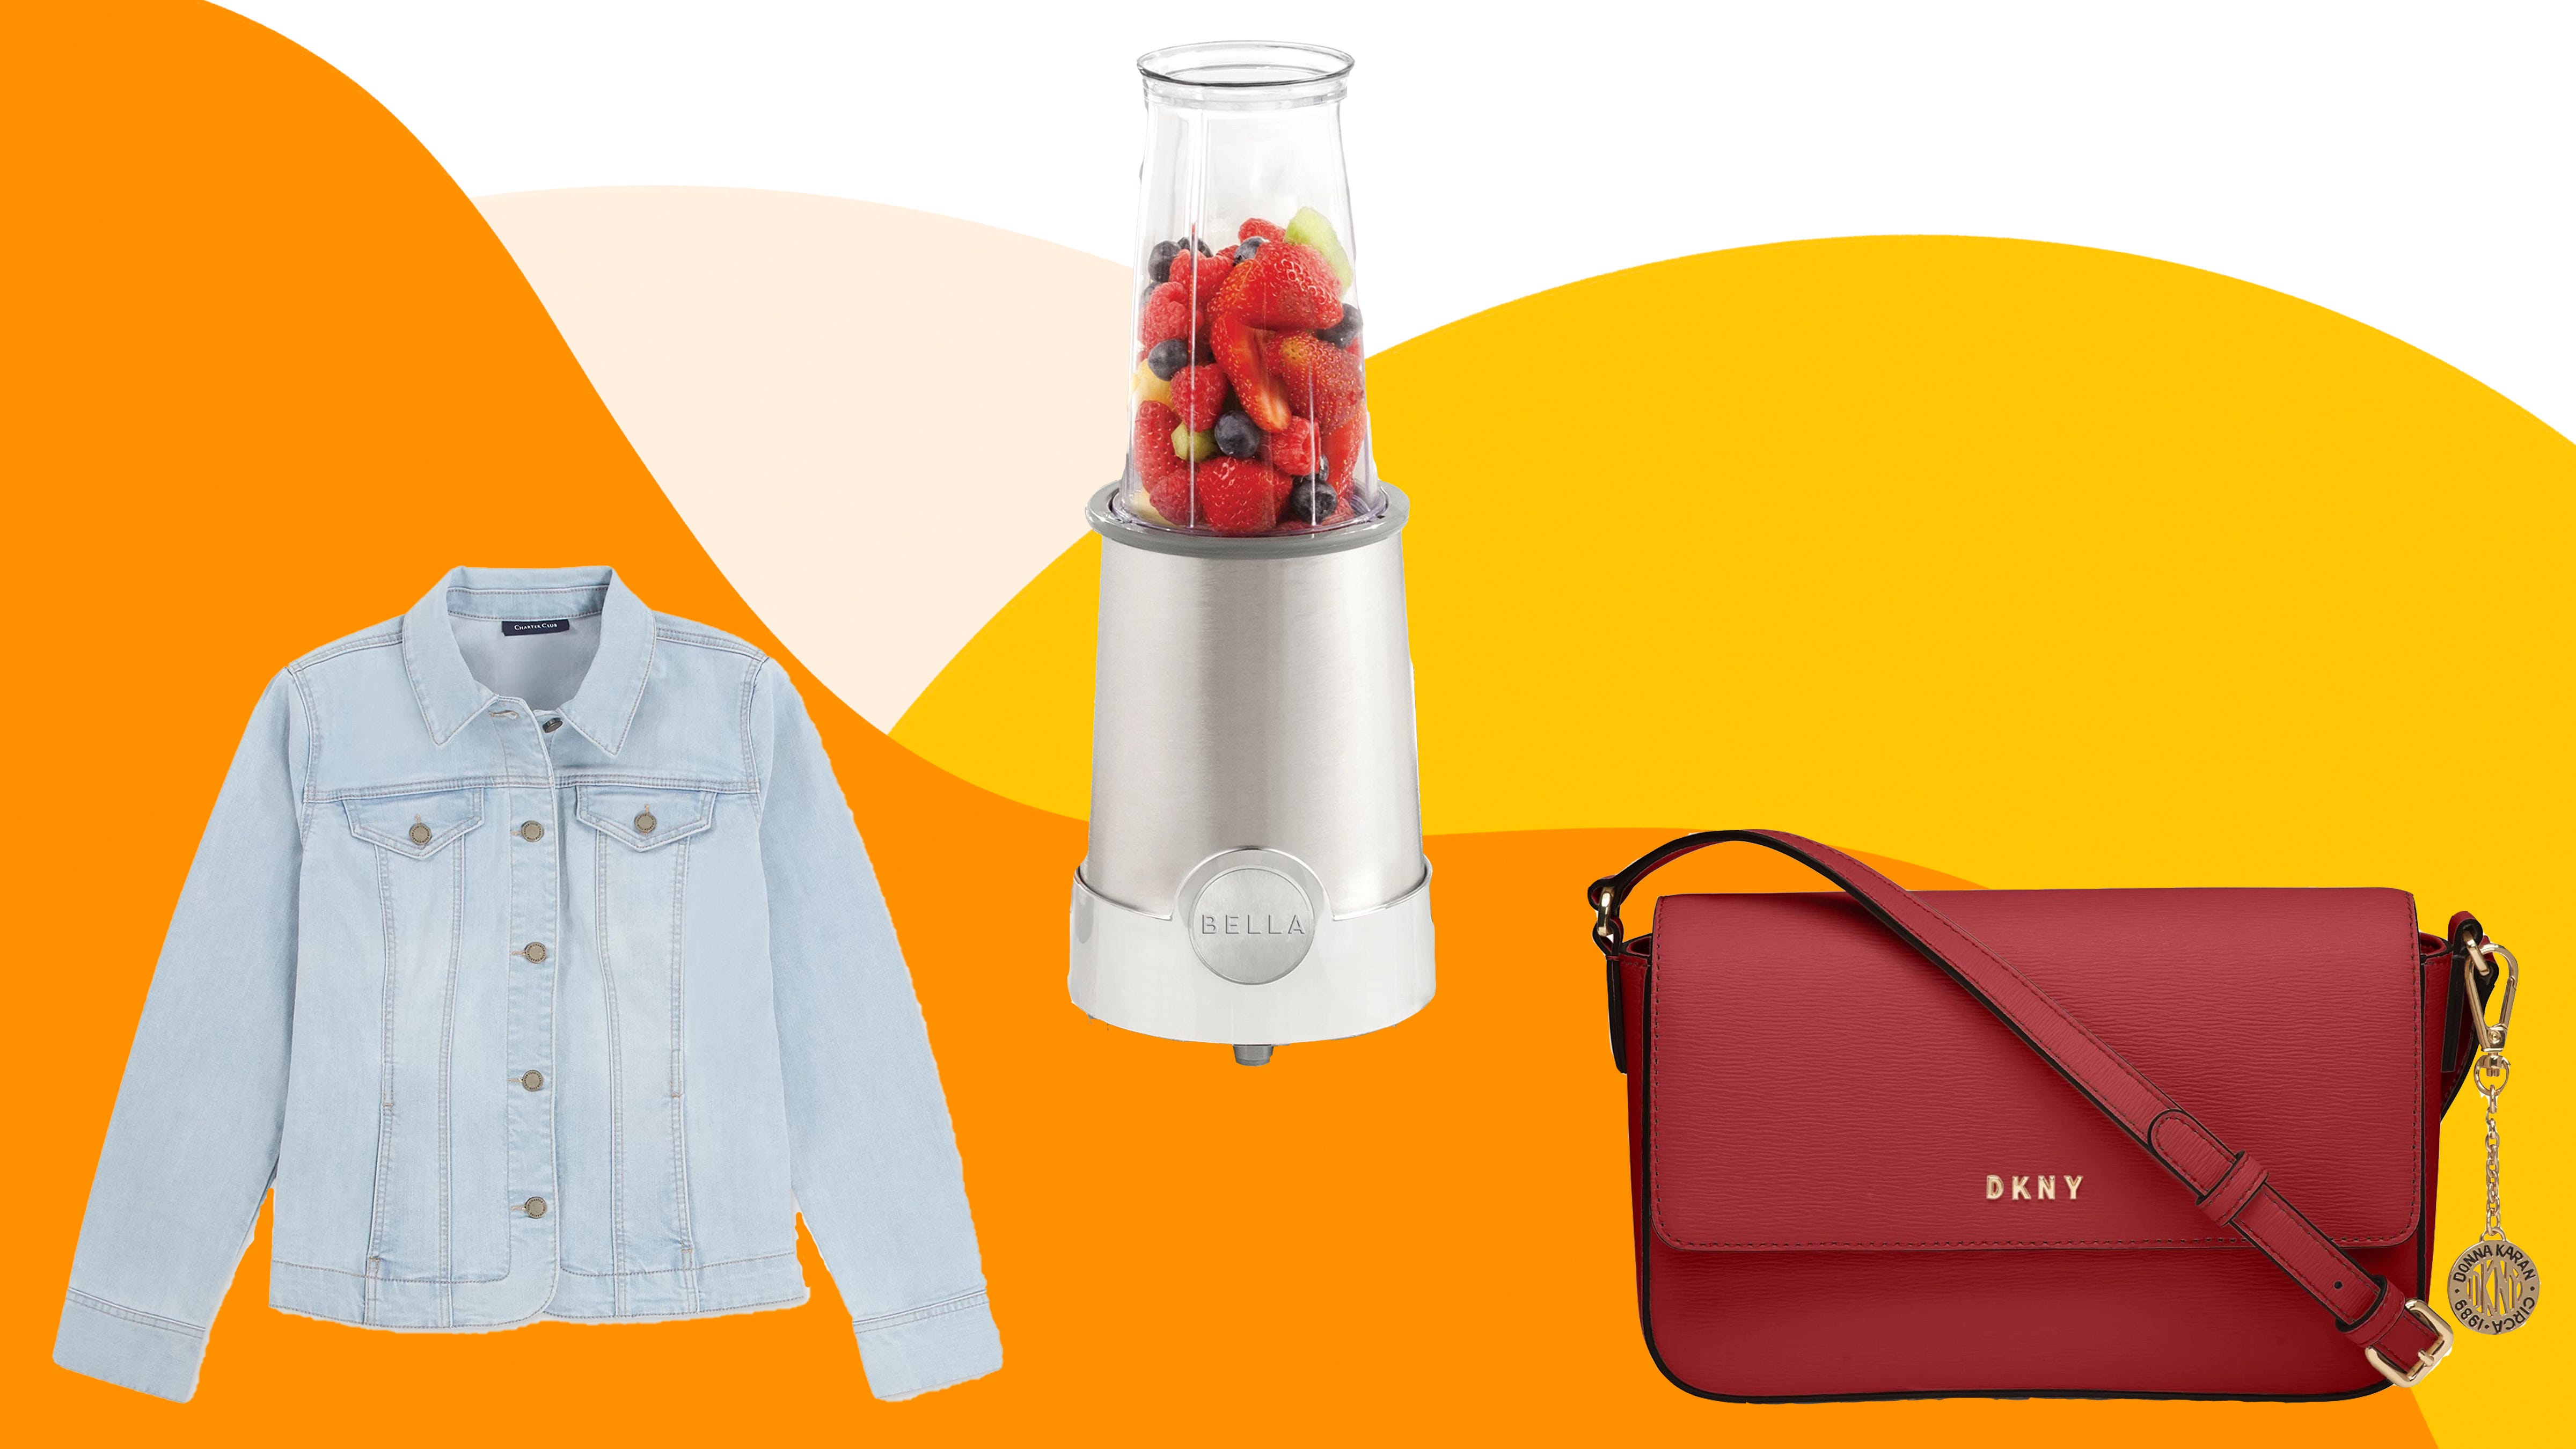 Save up to 60% on home and style essentials at Macy's One Day Sale this weekend